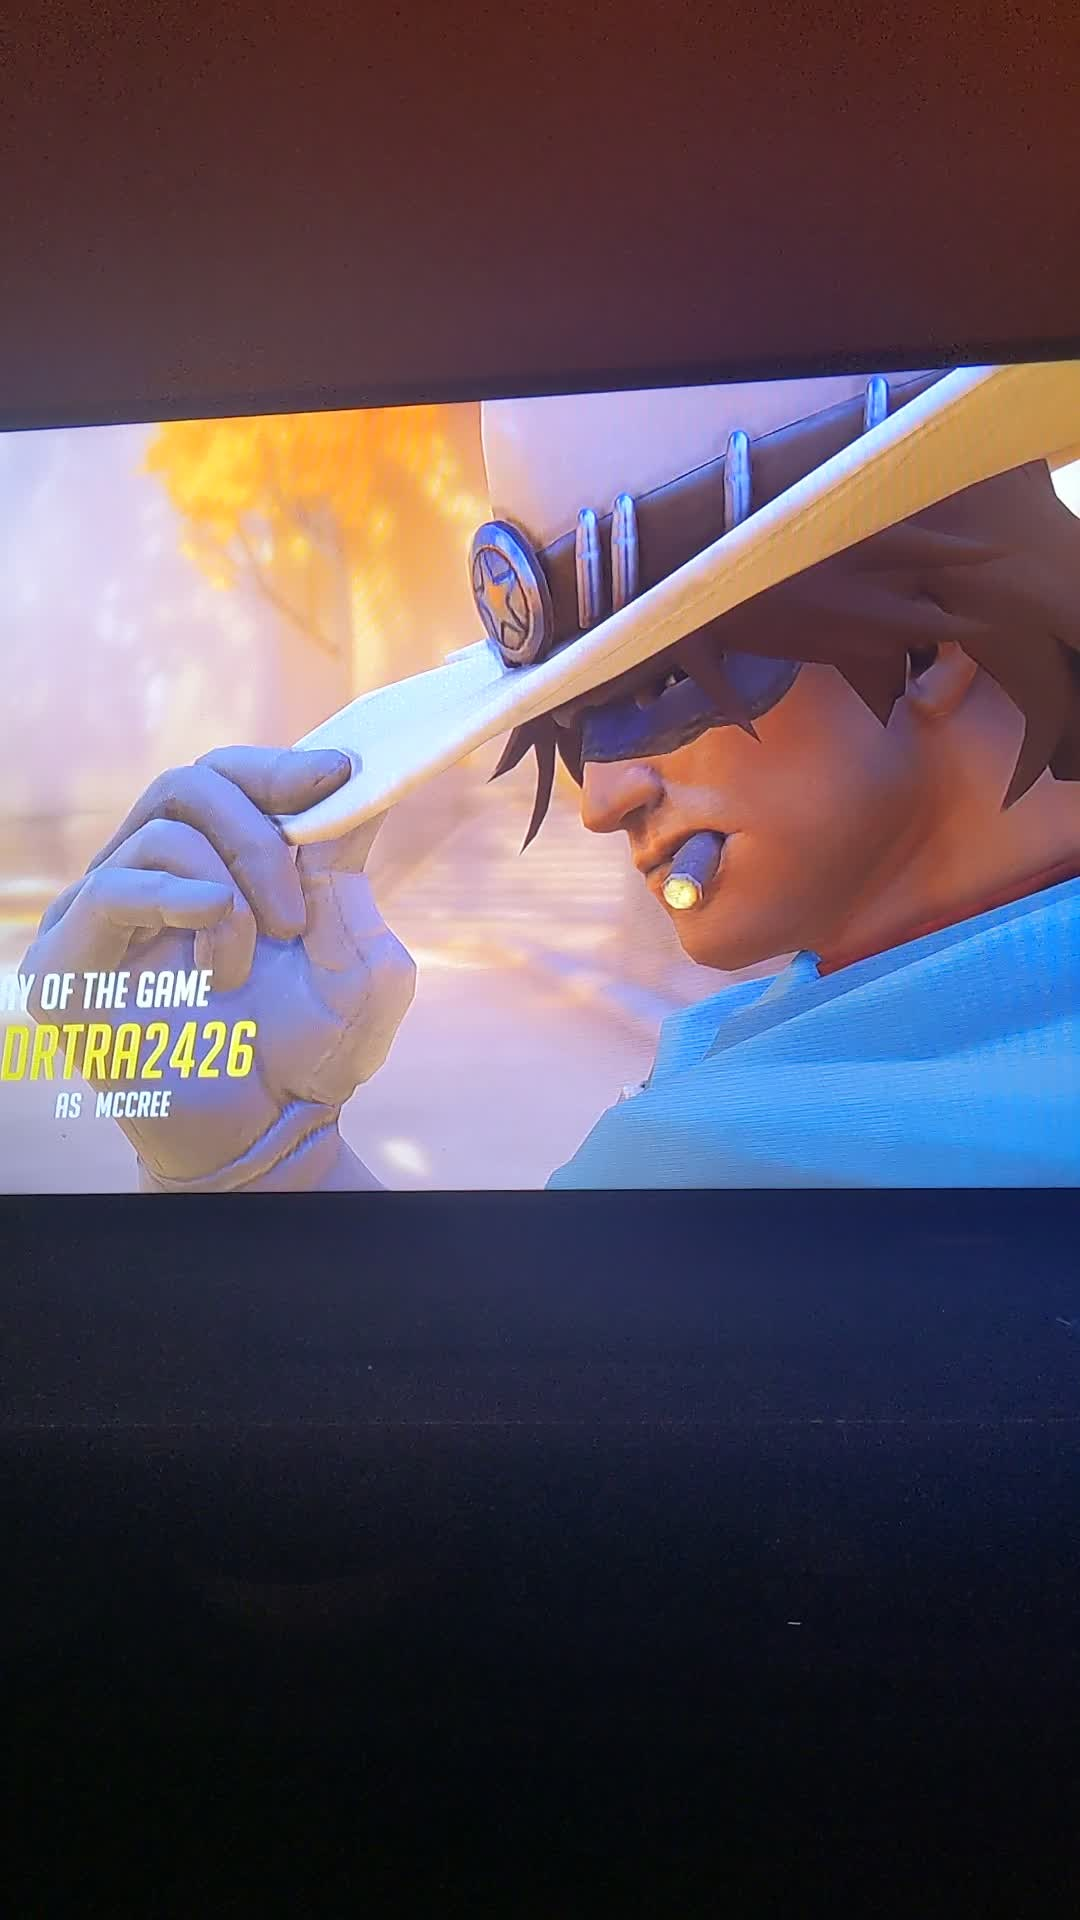 Overwatch: Promotions - It high noon video cover image 1